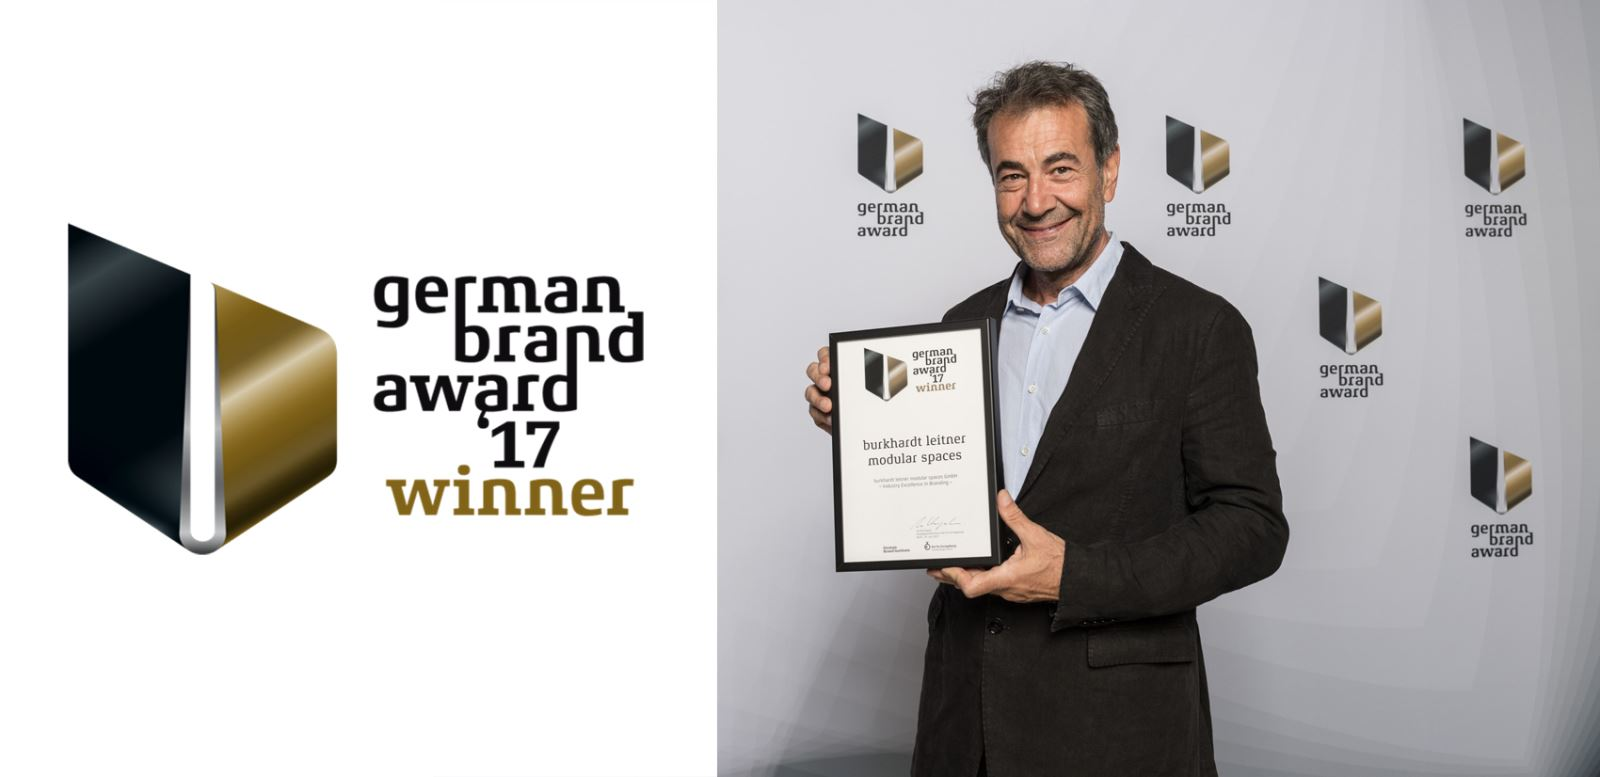 We received the German Brand Award 2017!